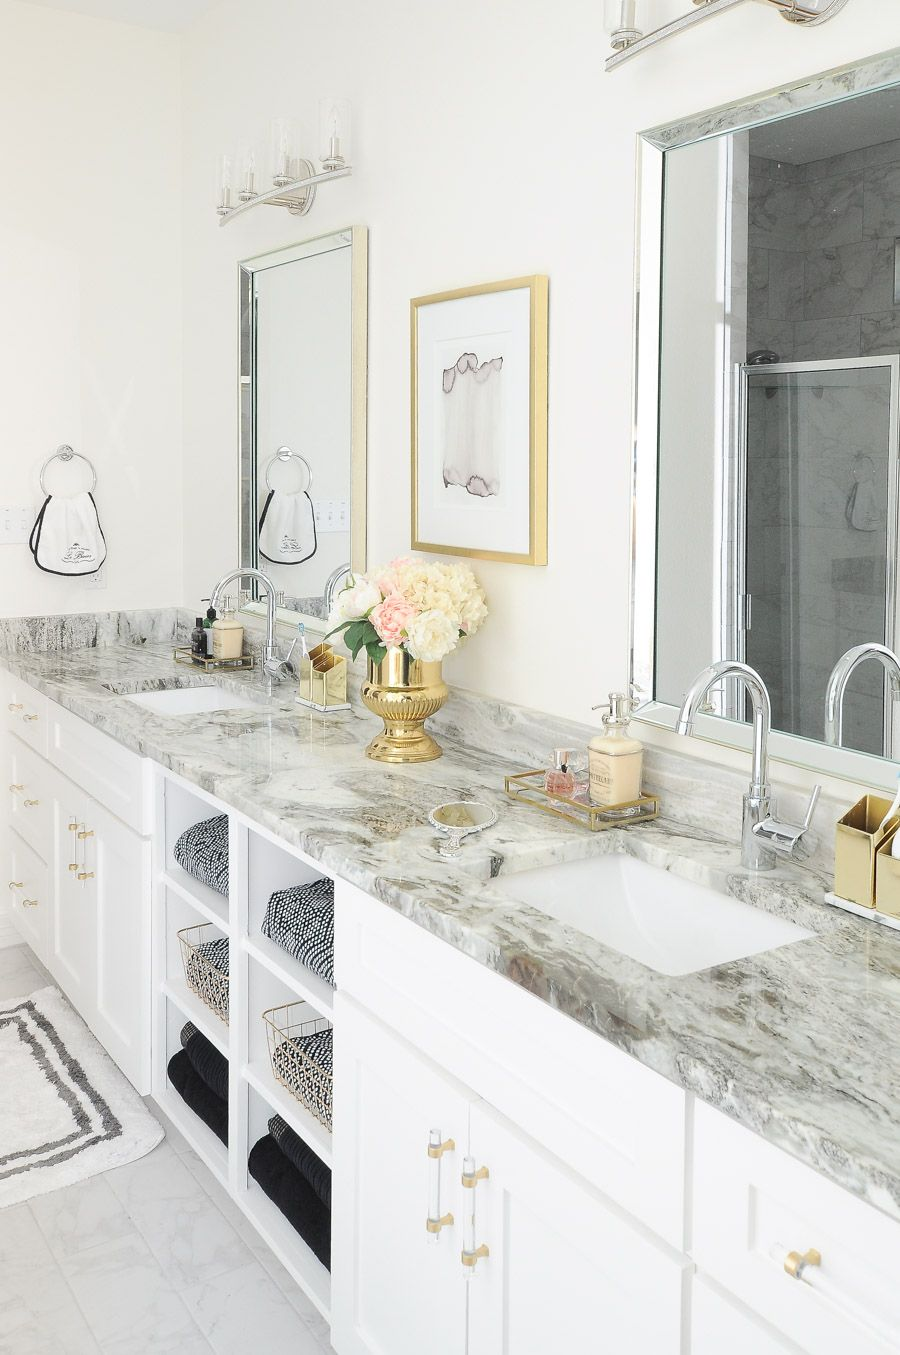 Black White And Gold In The Bathroom Black And White Gold And White Is Also An Im Small Master Bathroom Bathroom Interior Design Small Bathroom Remodel